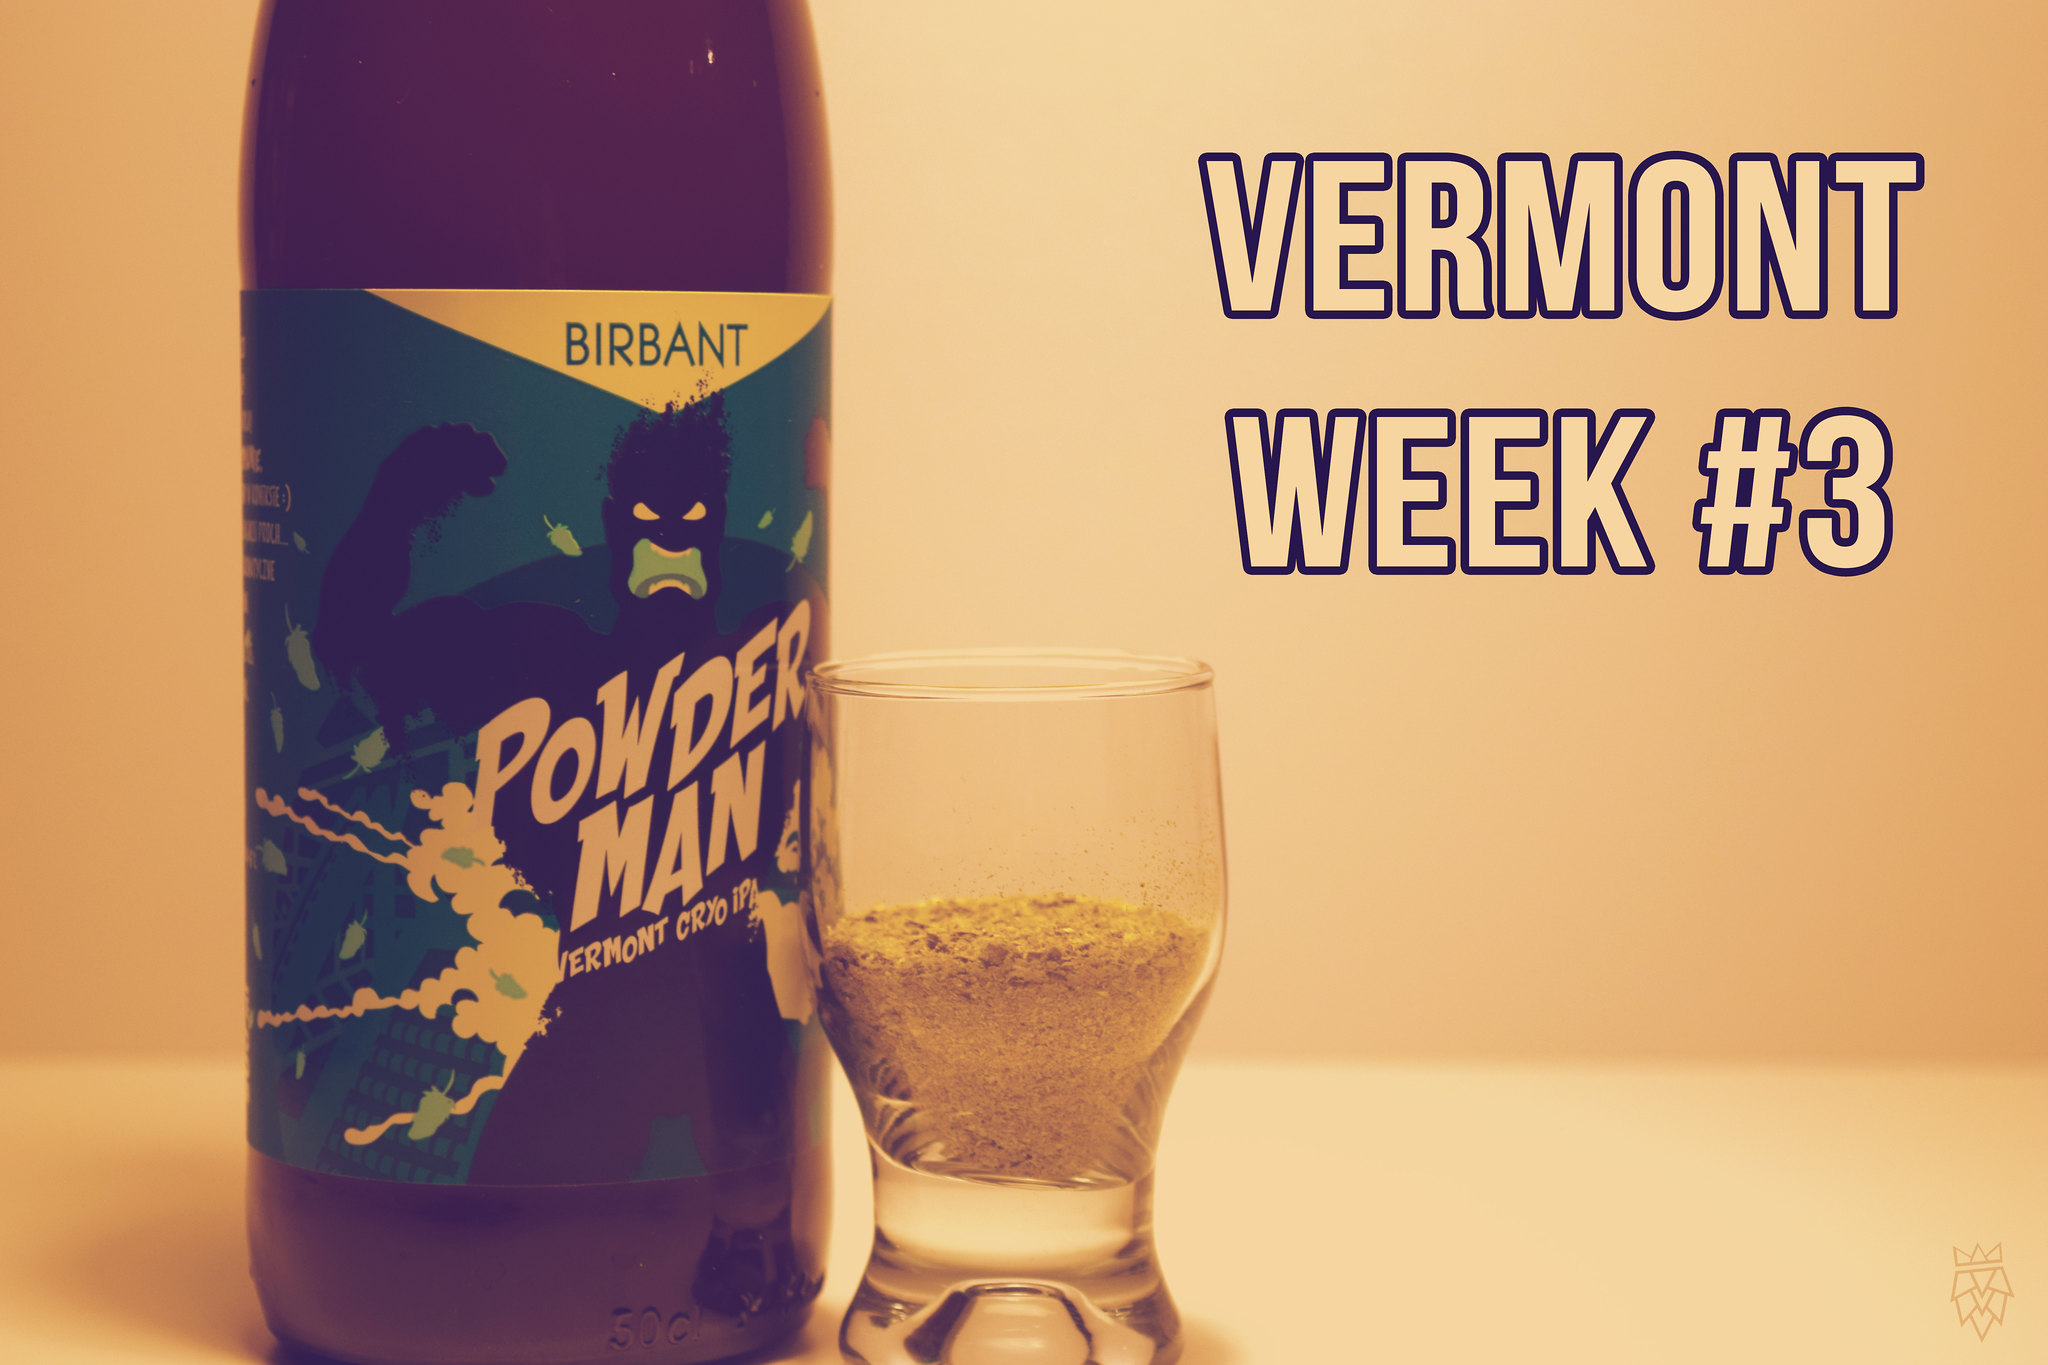 powderman vermont week 3